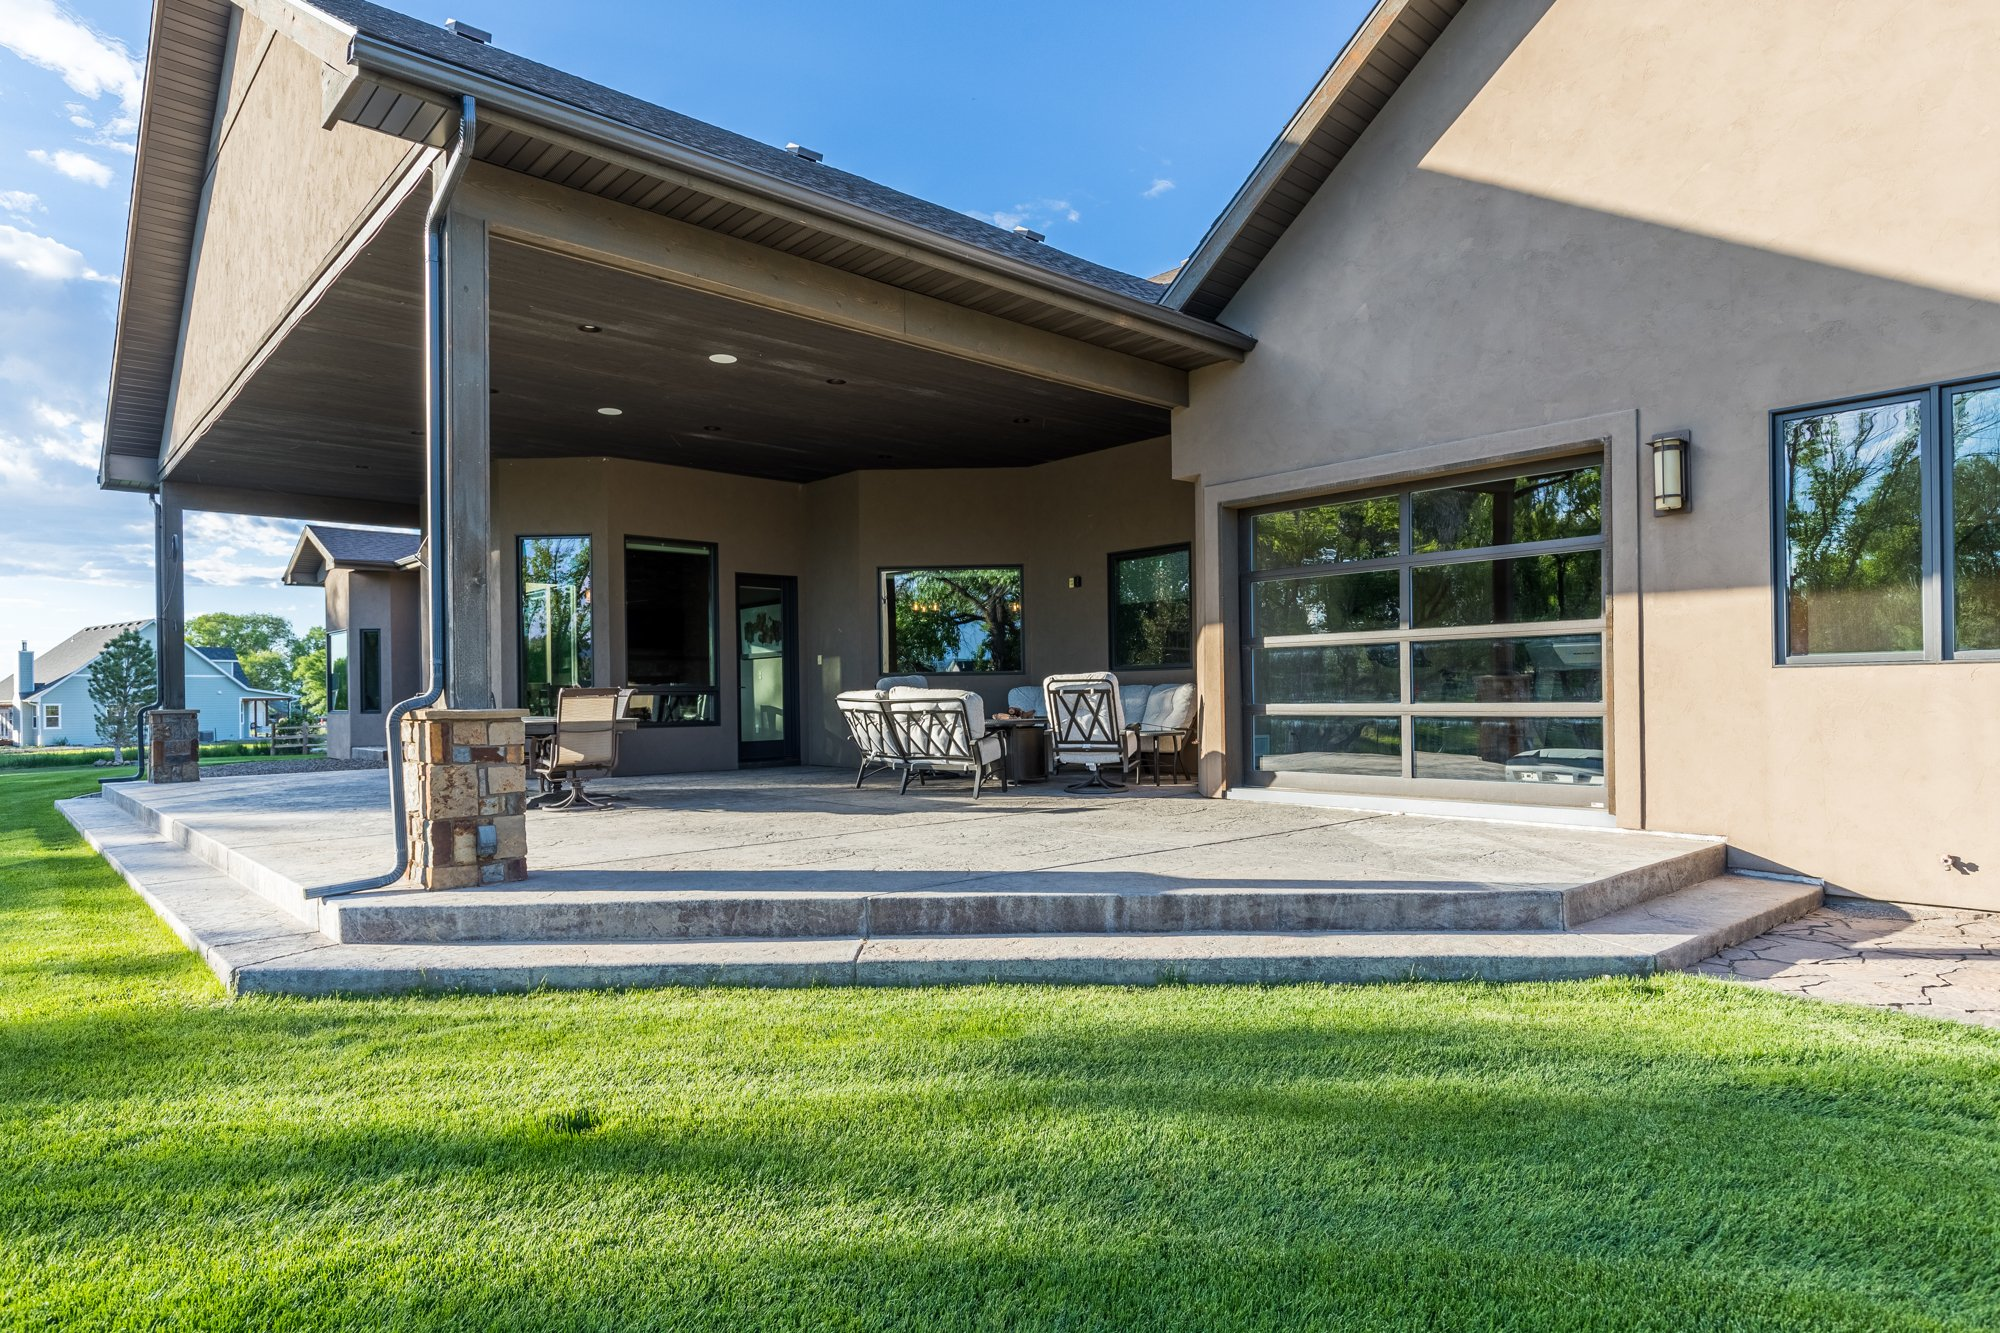 Covered Patio with Steps - 15067 6140 Ln Montrose, CO 81403 - Atha Team Luxury Real Estate